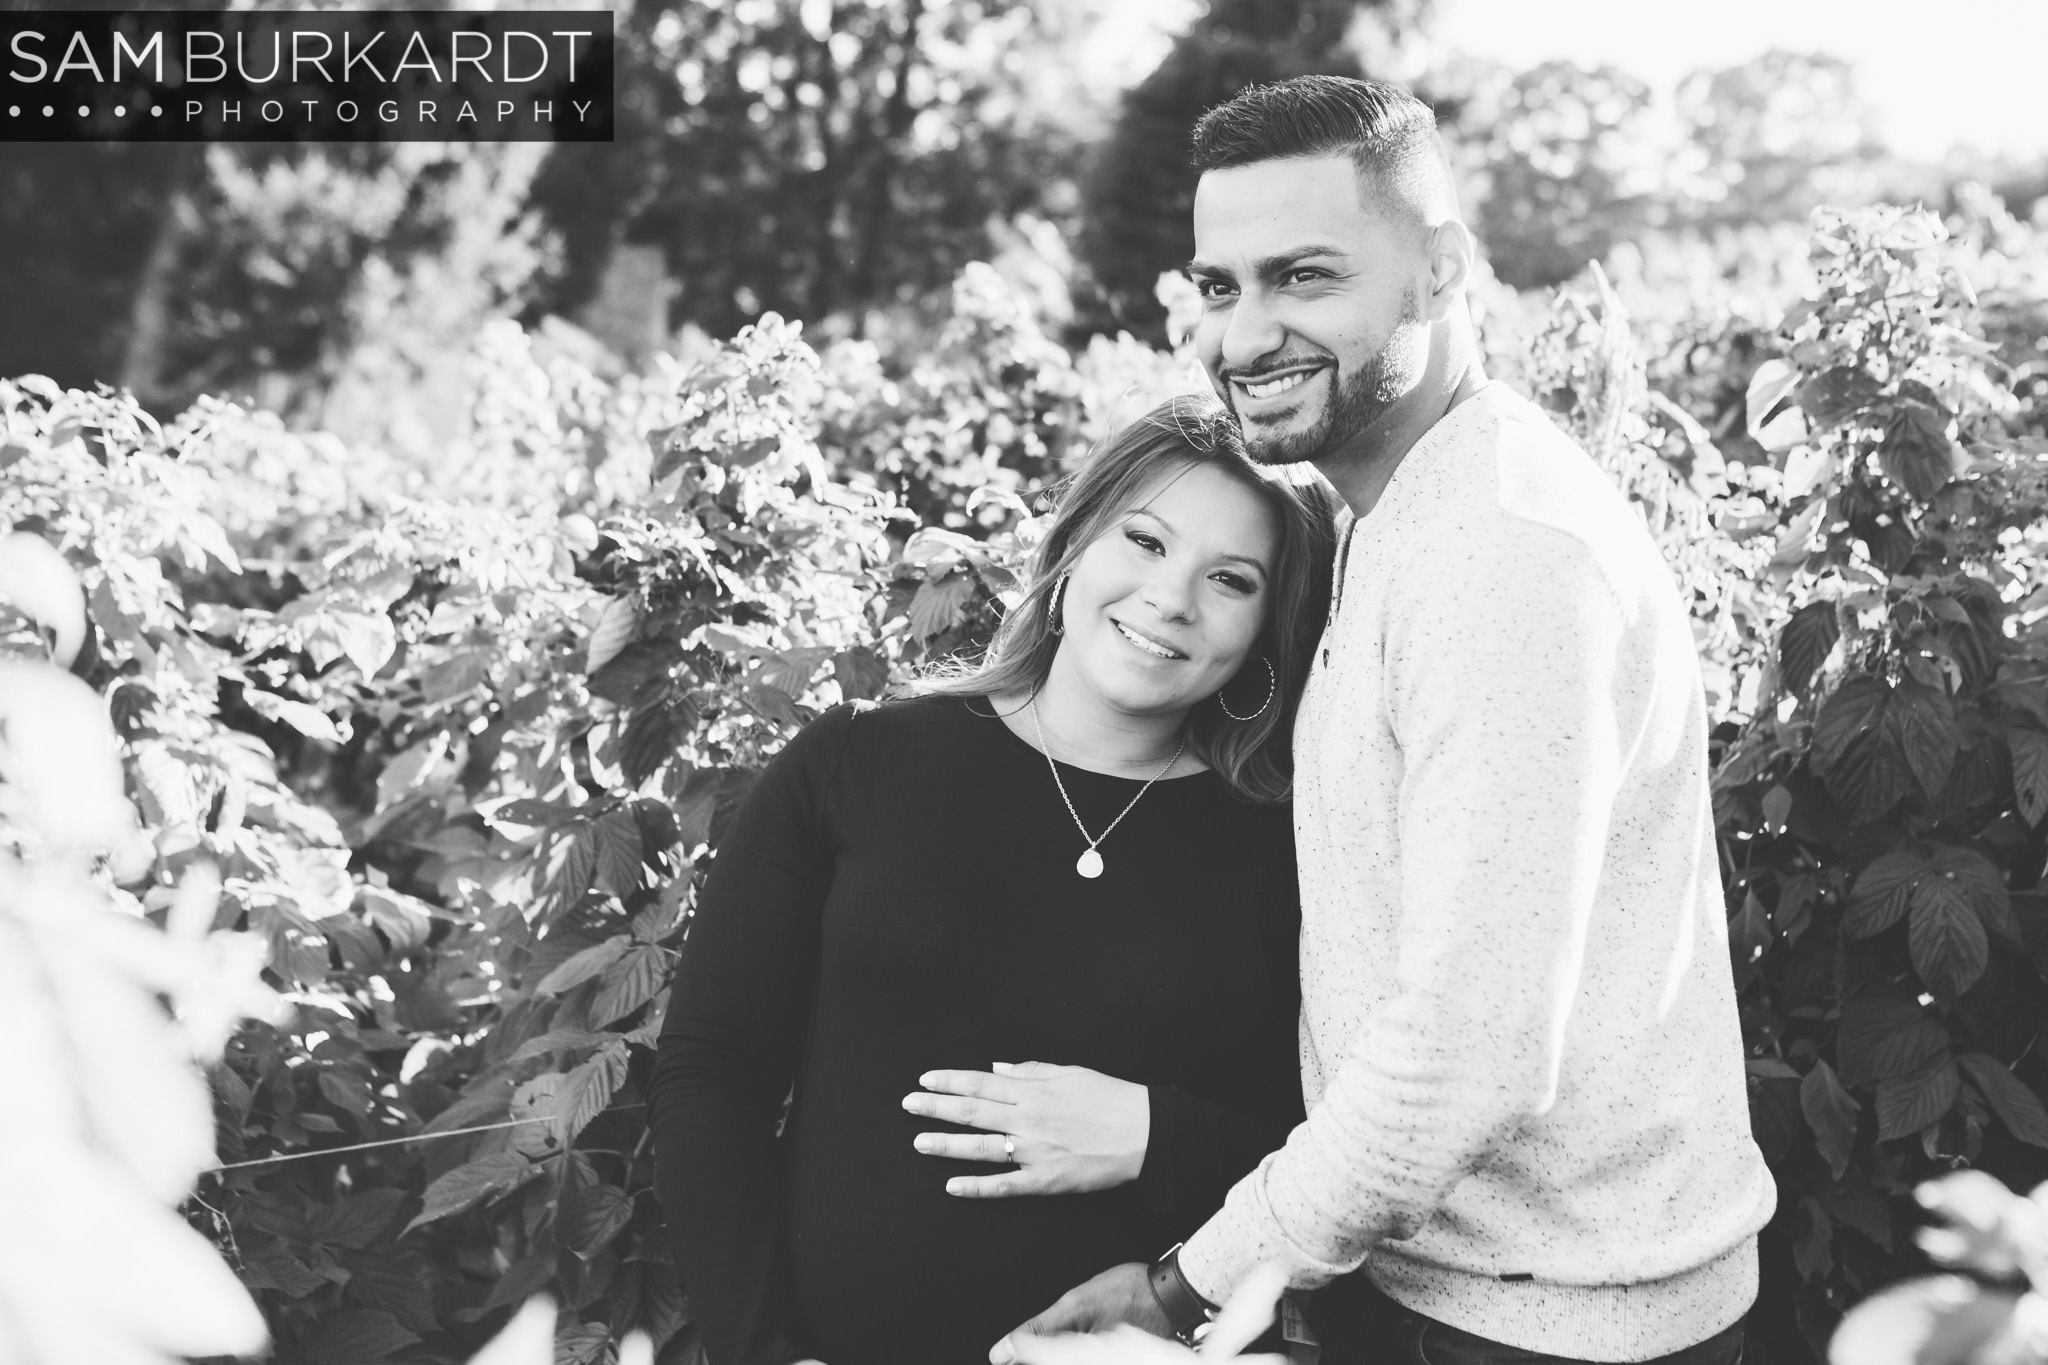 sburkardt_maternity_connecticut_fall_orchard_photography_016.jpg